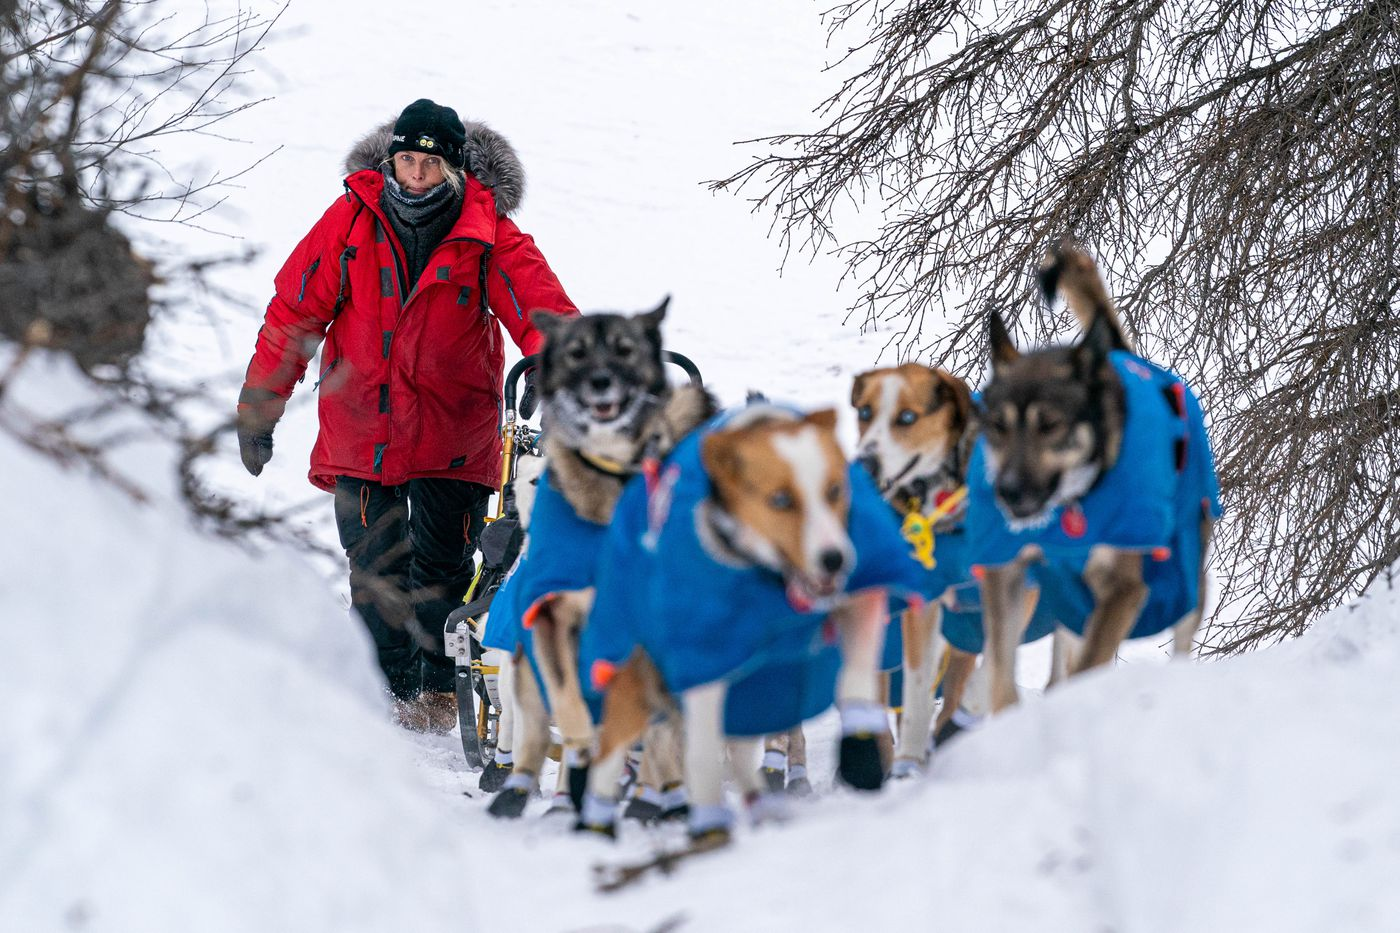 Mille Porsild mushes up a hill before Finger Lake on Sunday, March 14, 2021 during the 2021 Iditarod. (Loren Holmes / ADN)